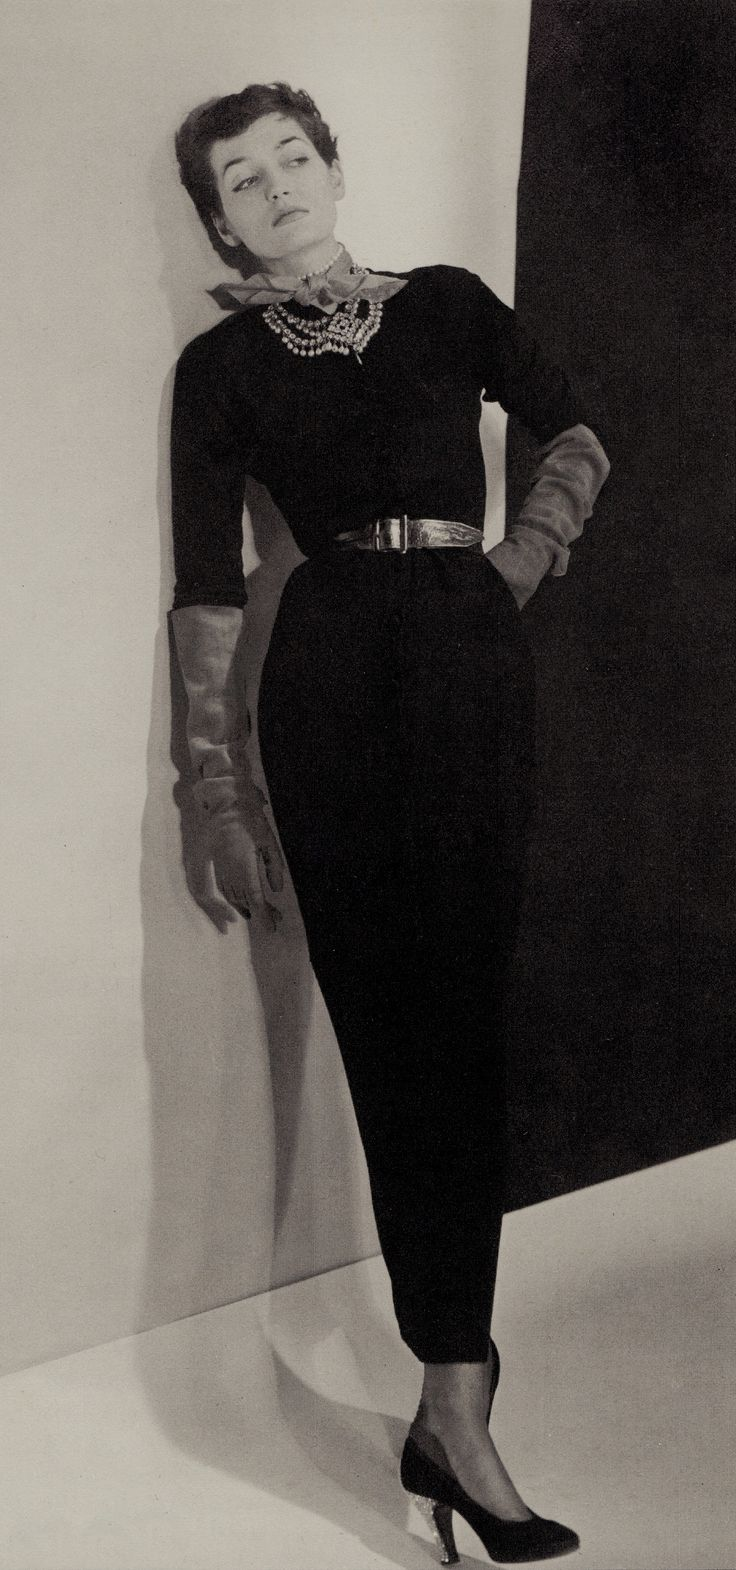 MAXIME de la FALAISE 1950. She has always dressed for flair and elegance with simplicity. From 'The Women we wanted to Look Like' Brigid Keenan 1977.